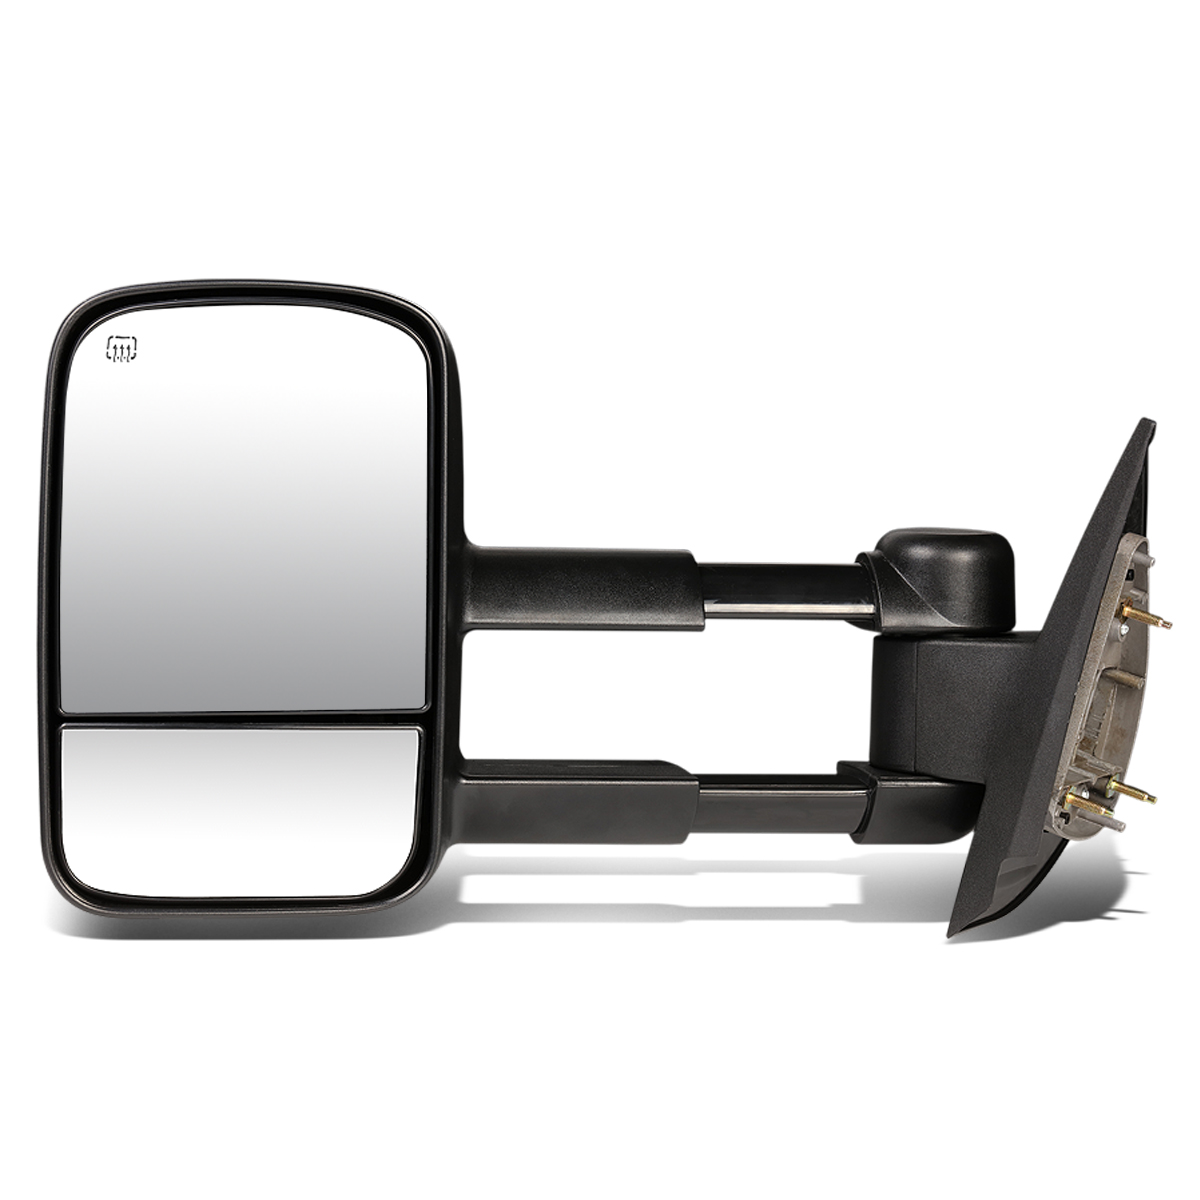 For 2007-2014 Chevy Silverado/GMC Sierra Powered Adjustment+Heated Tow Towing Mirror (Left/Driver)